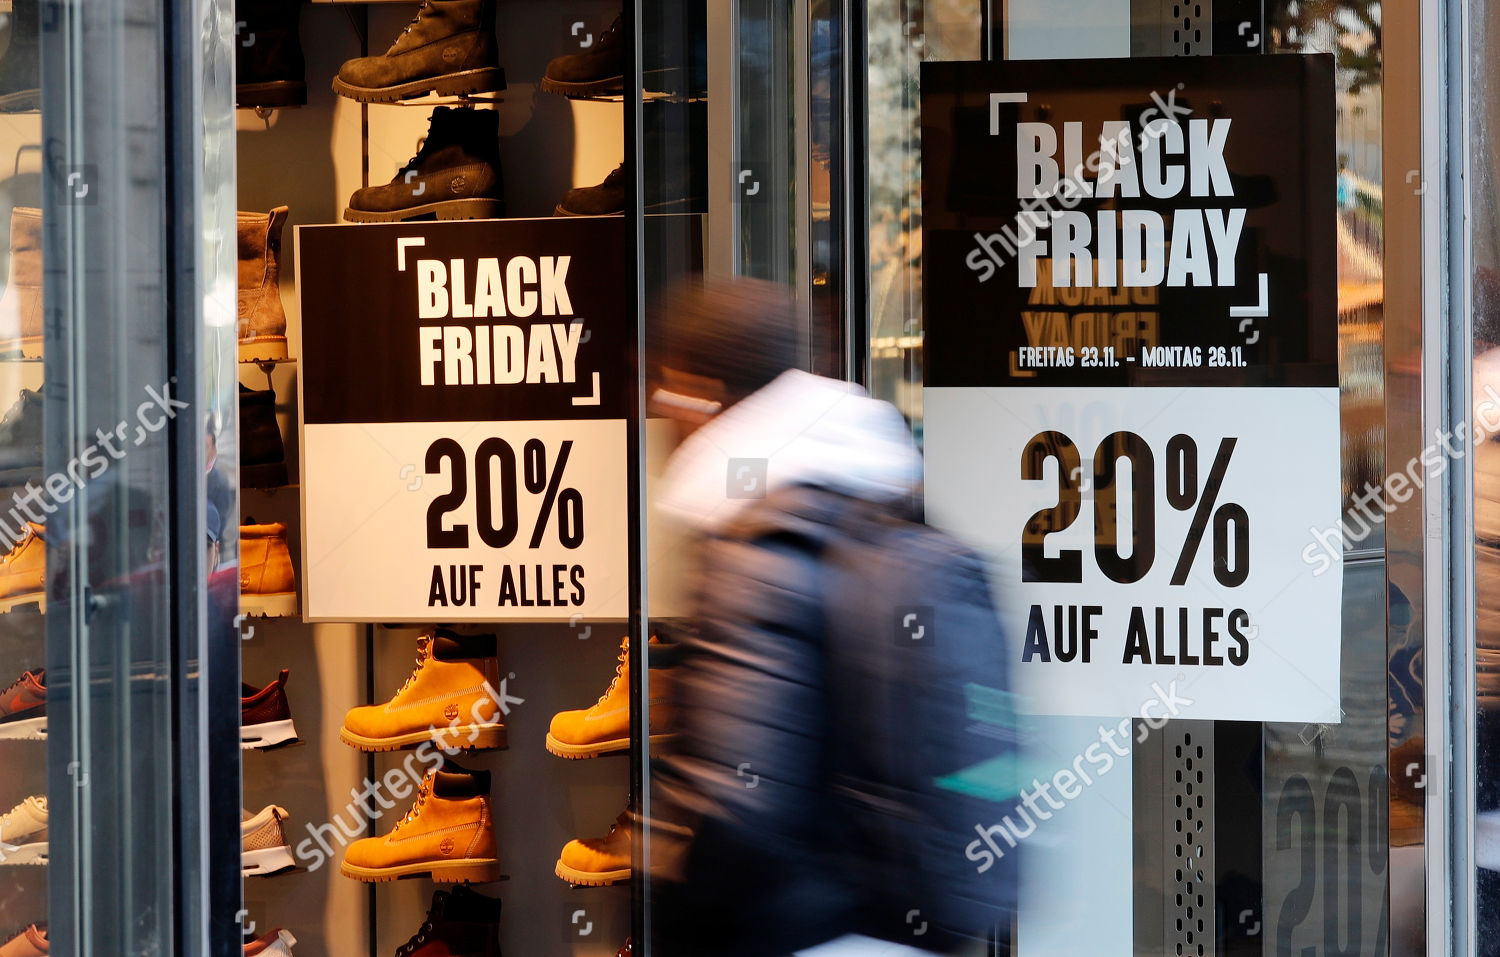 Black Friday Stuttgart Poster Letters Black Friday Hangs On Shop Stock Photo 9990620e